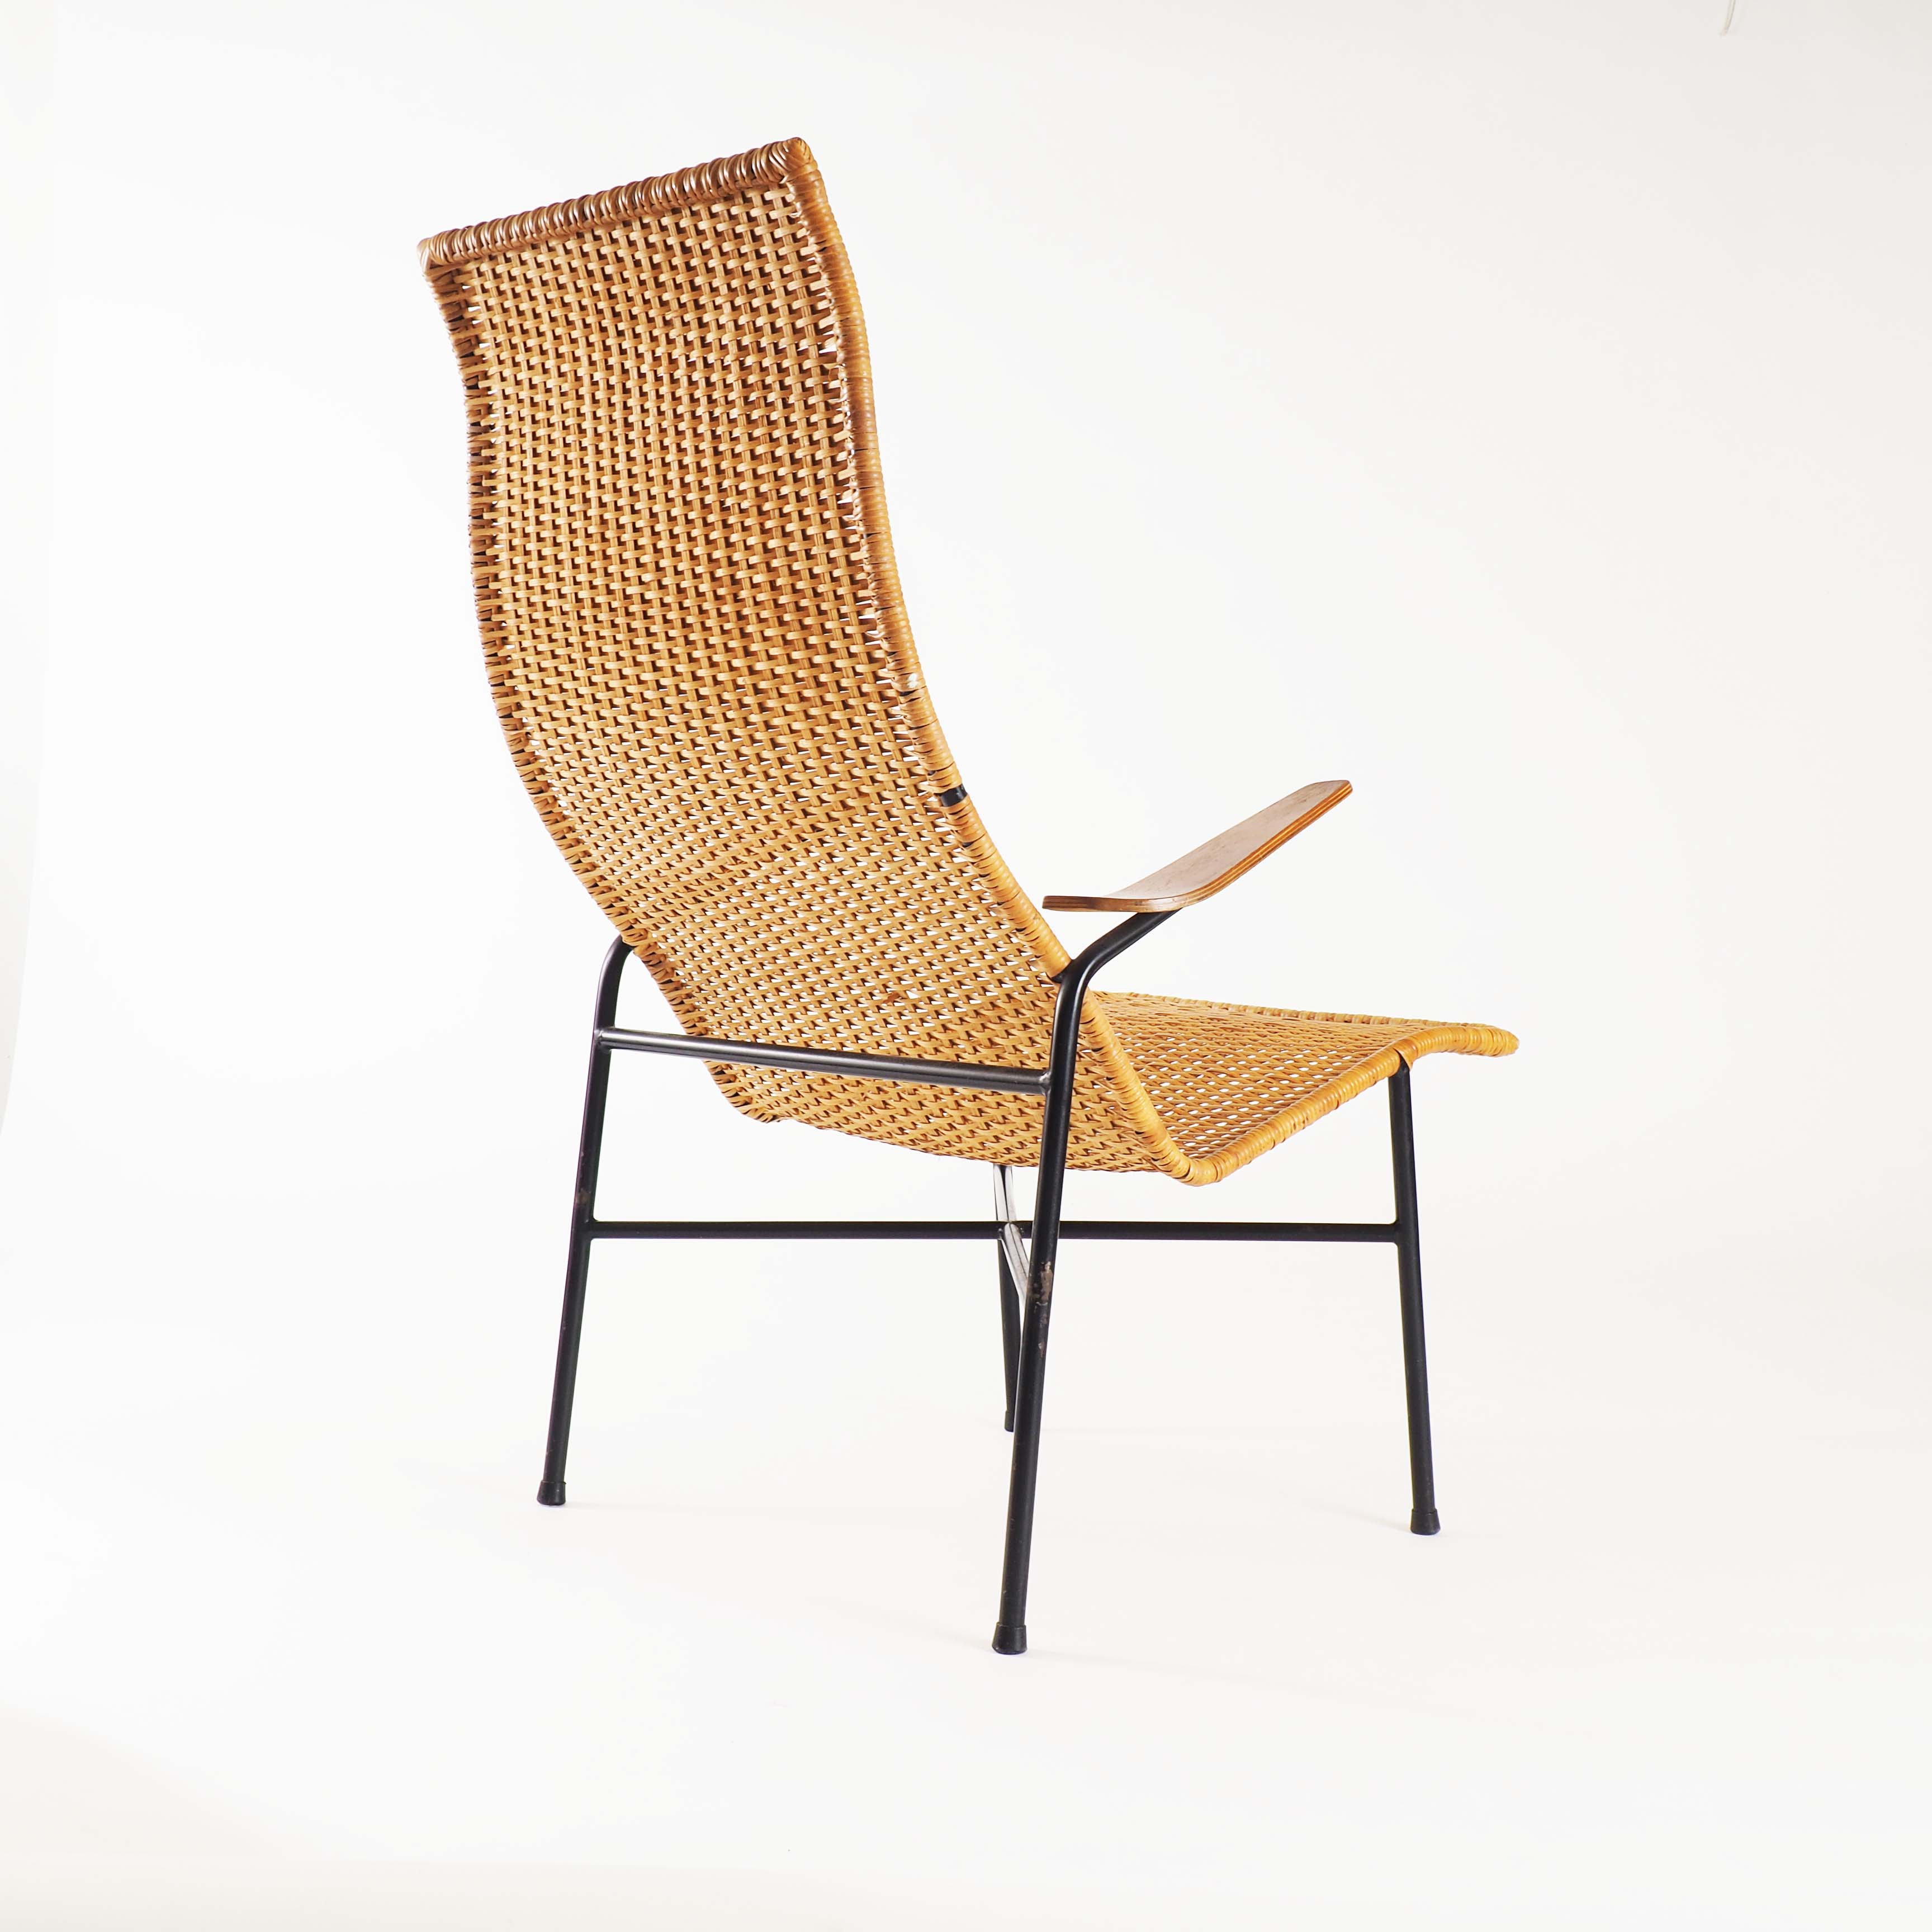 Lounge chair in rattan, teak and metal